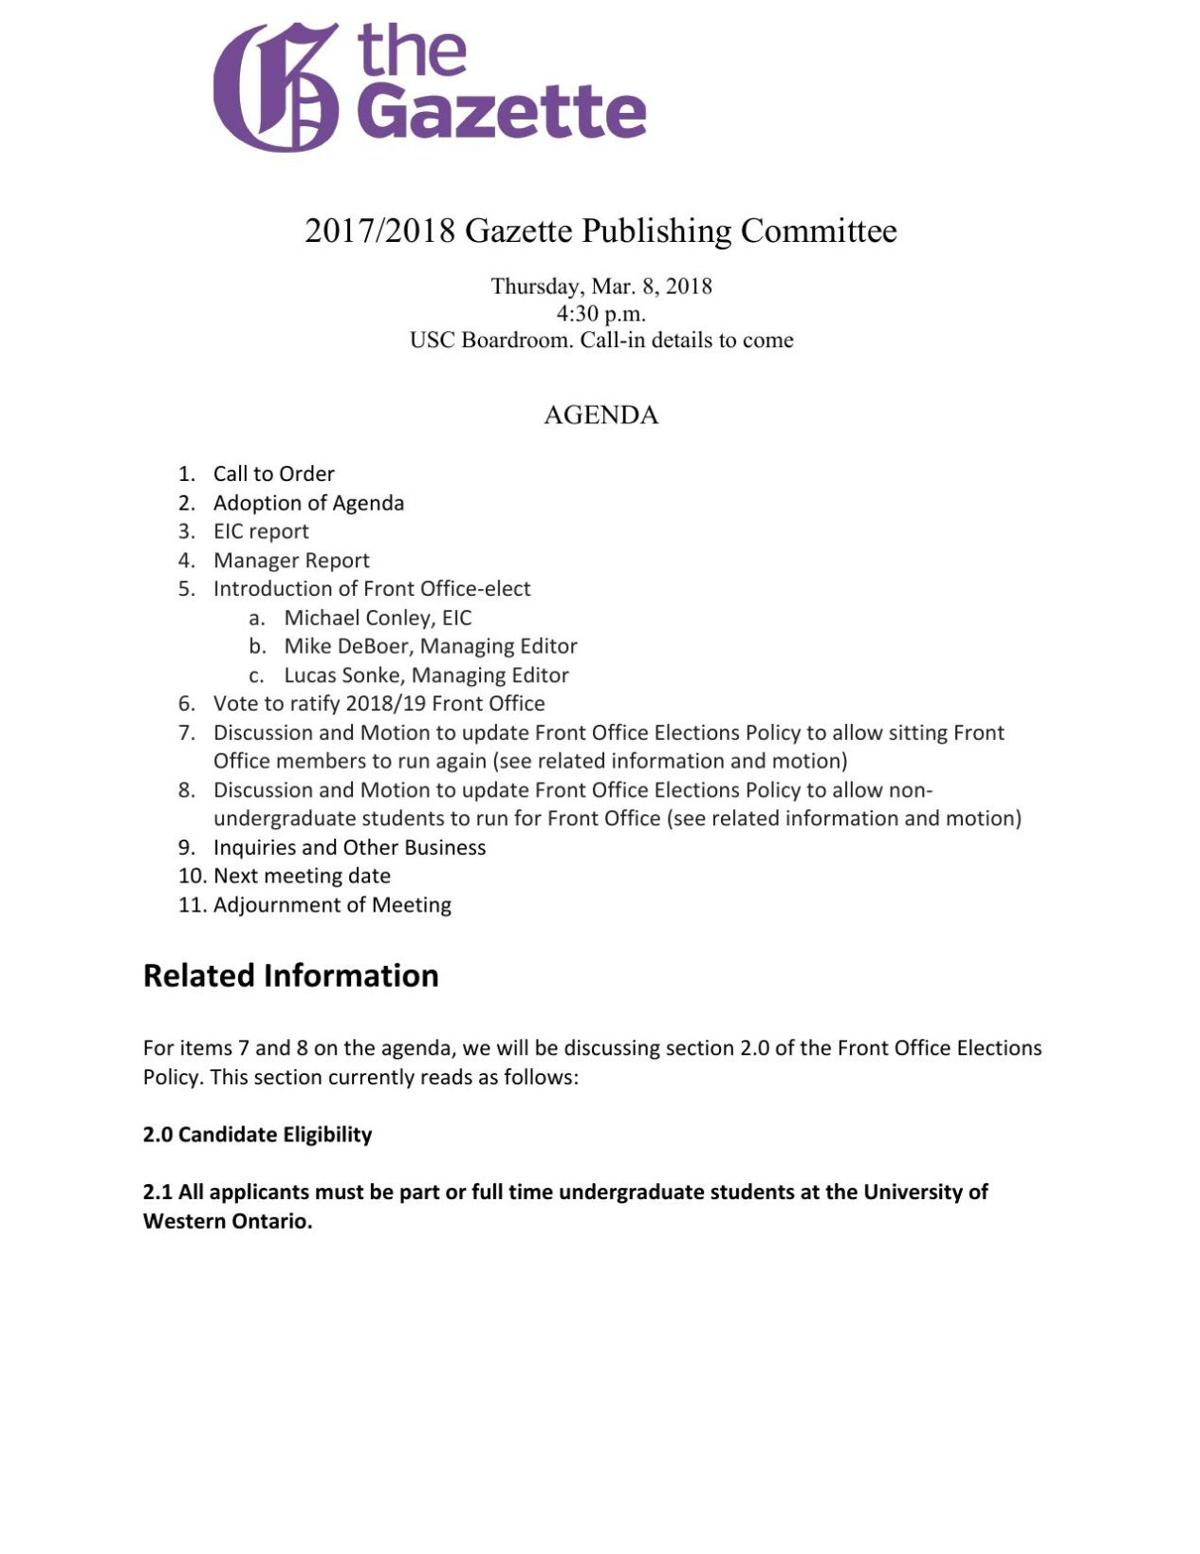 Publications committee March 2018